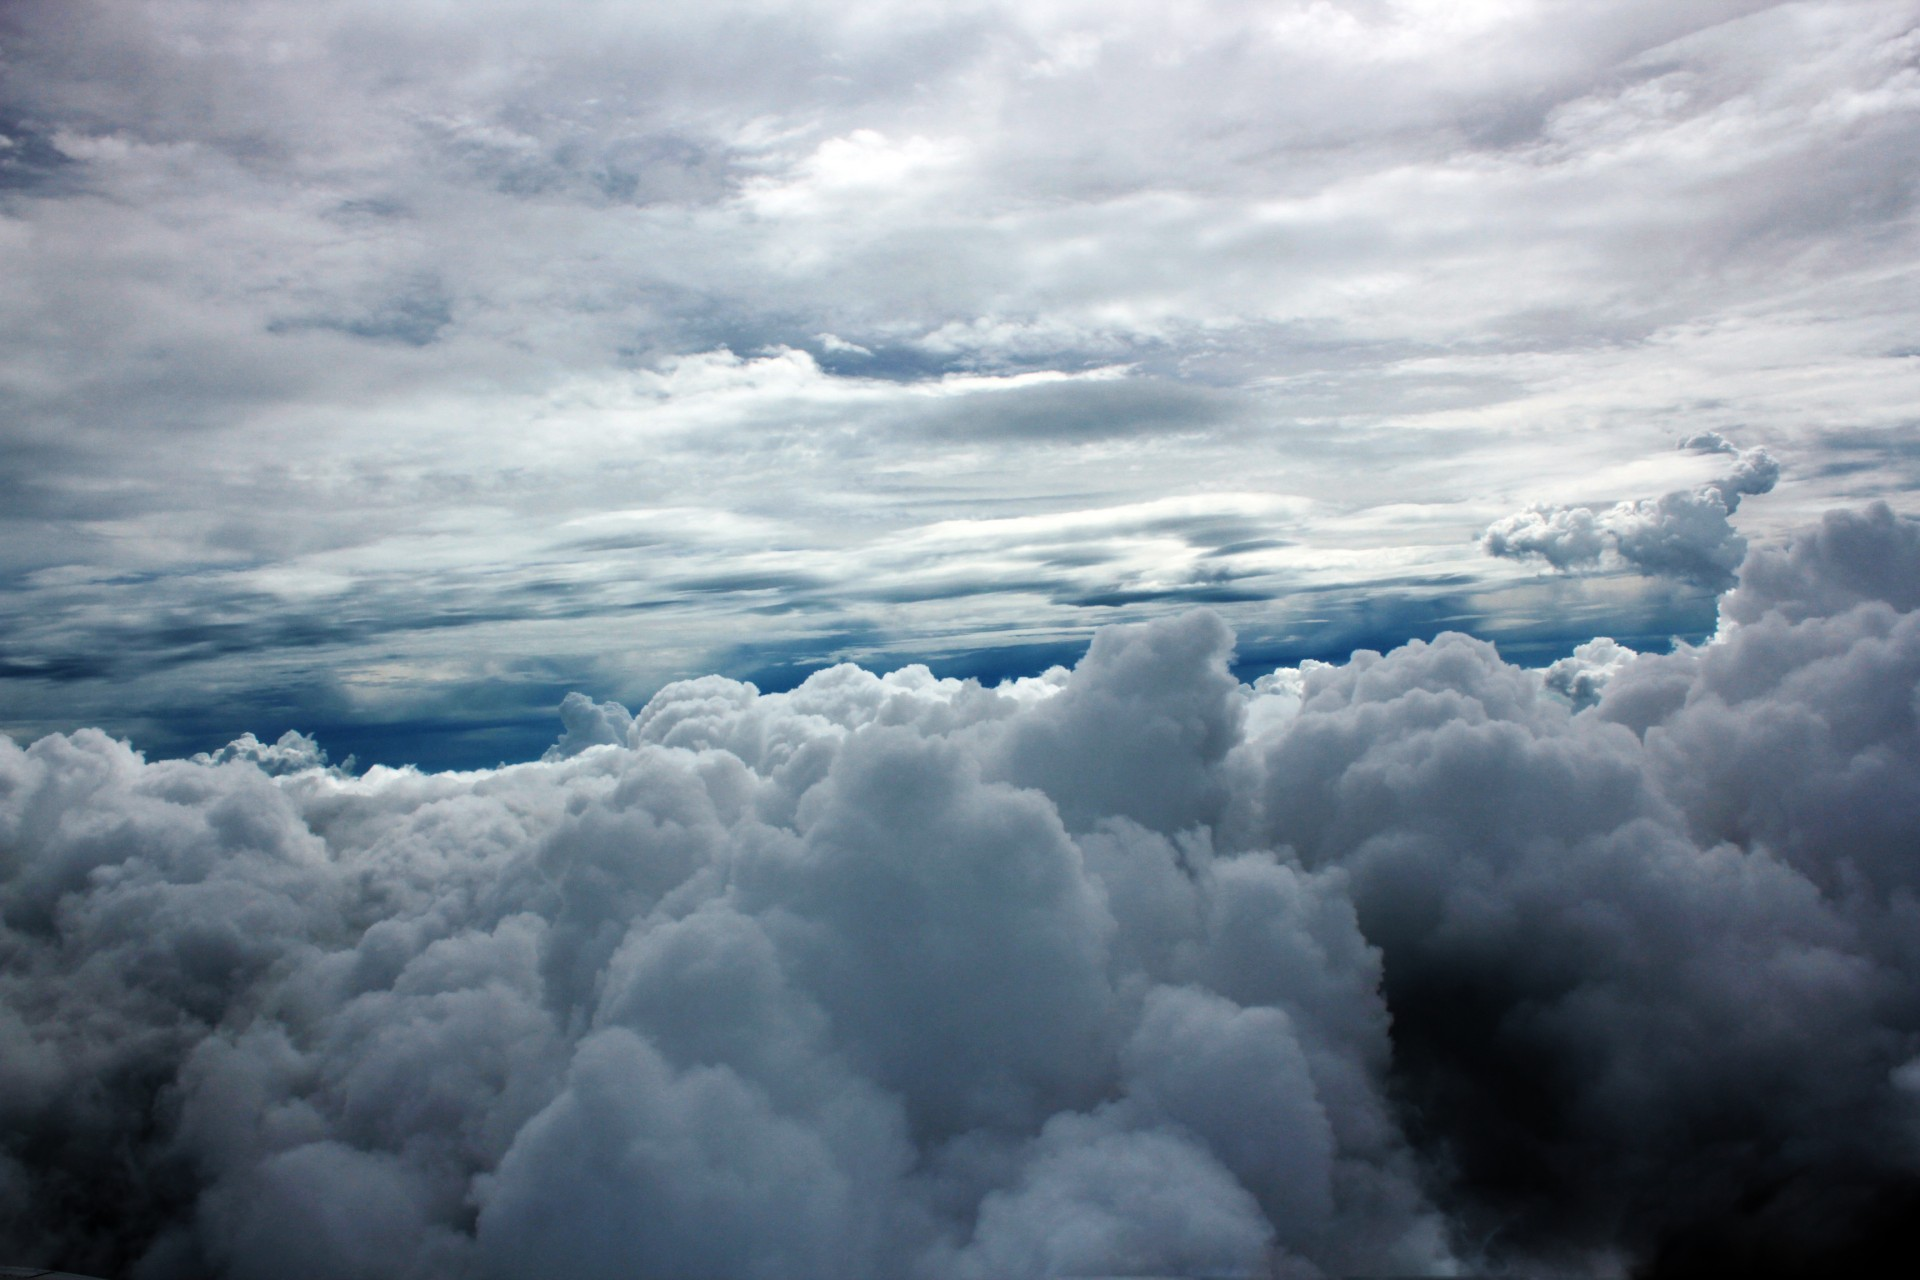 Wallpaper Falling Skies Clouds Above The Sky 7 Free Stock Photo Public Domain